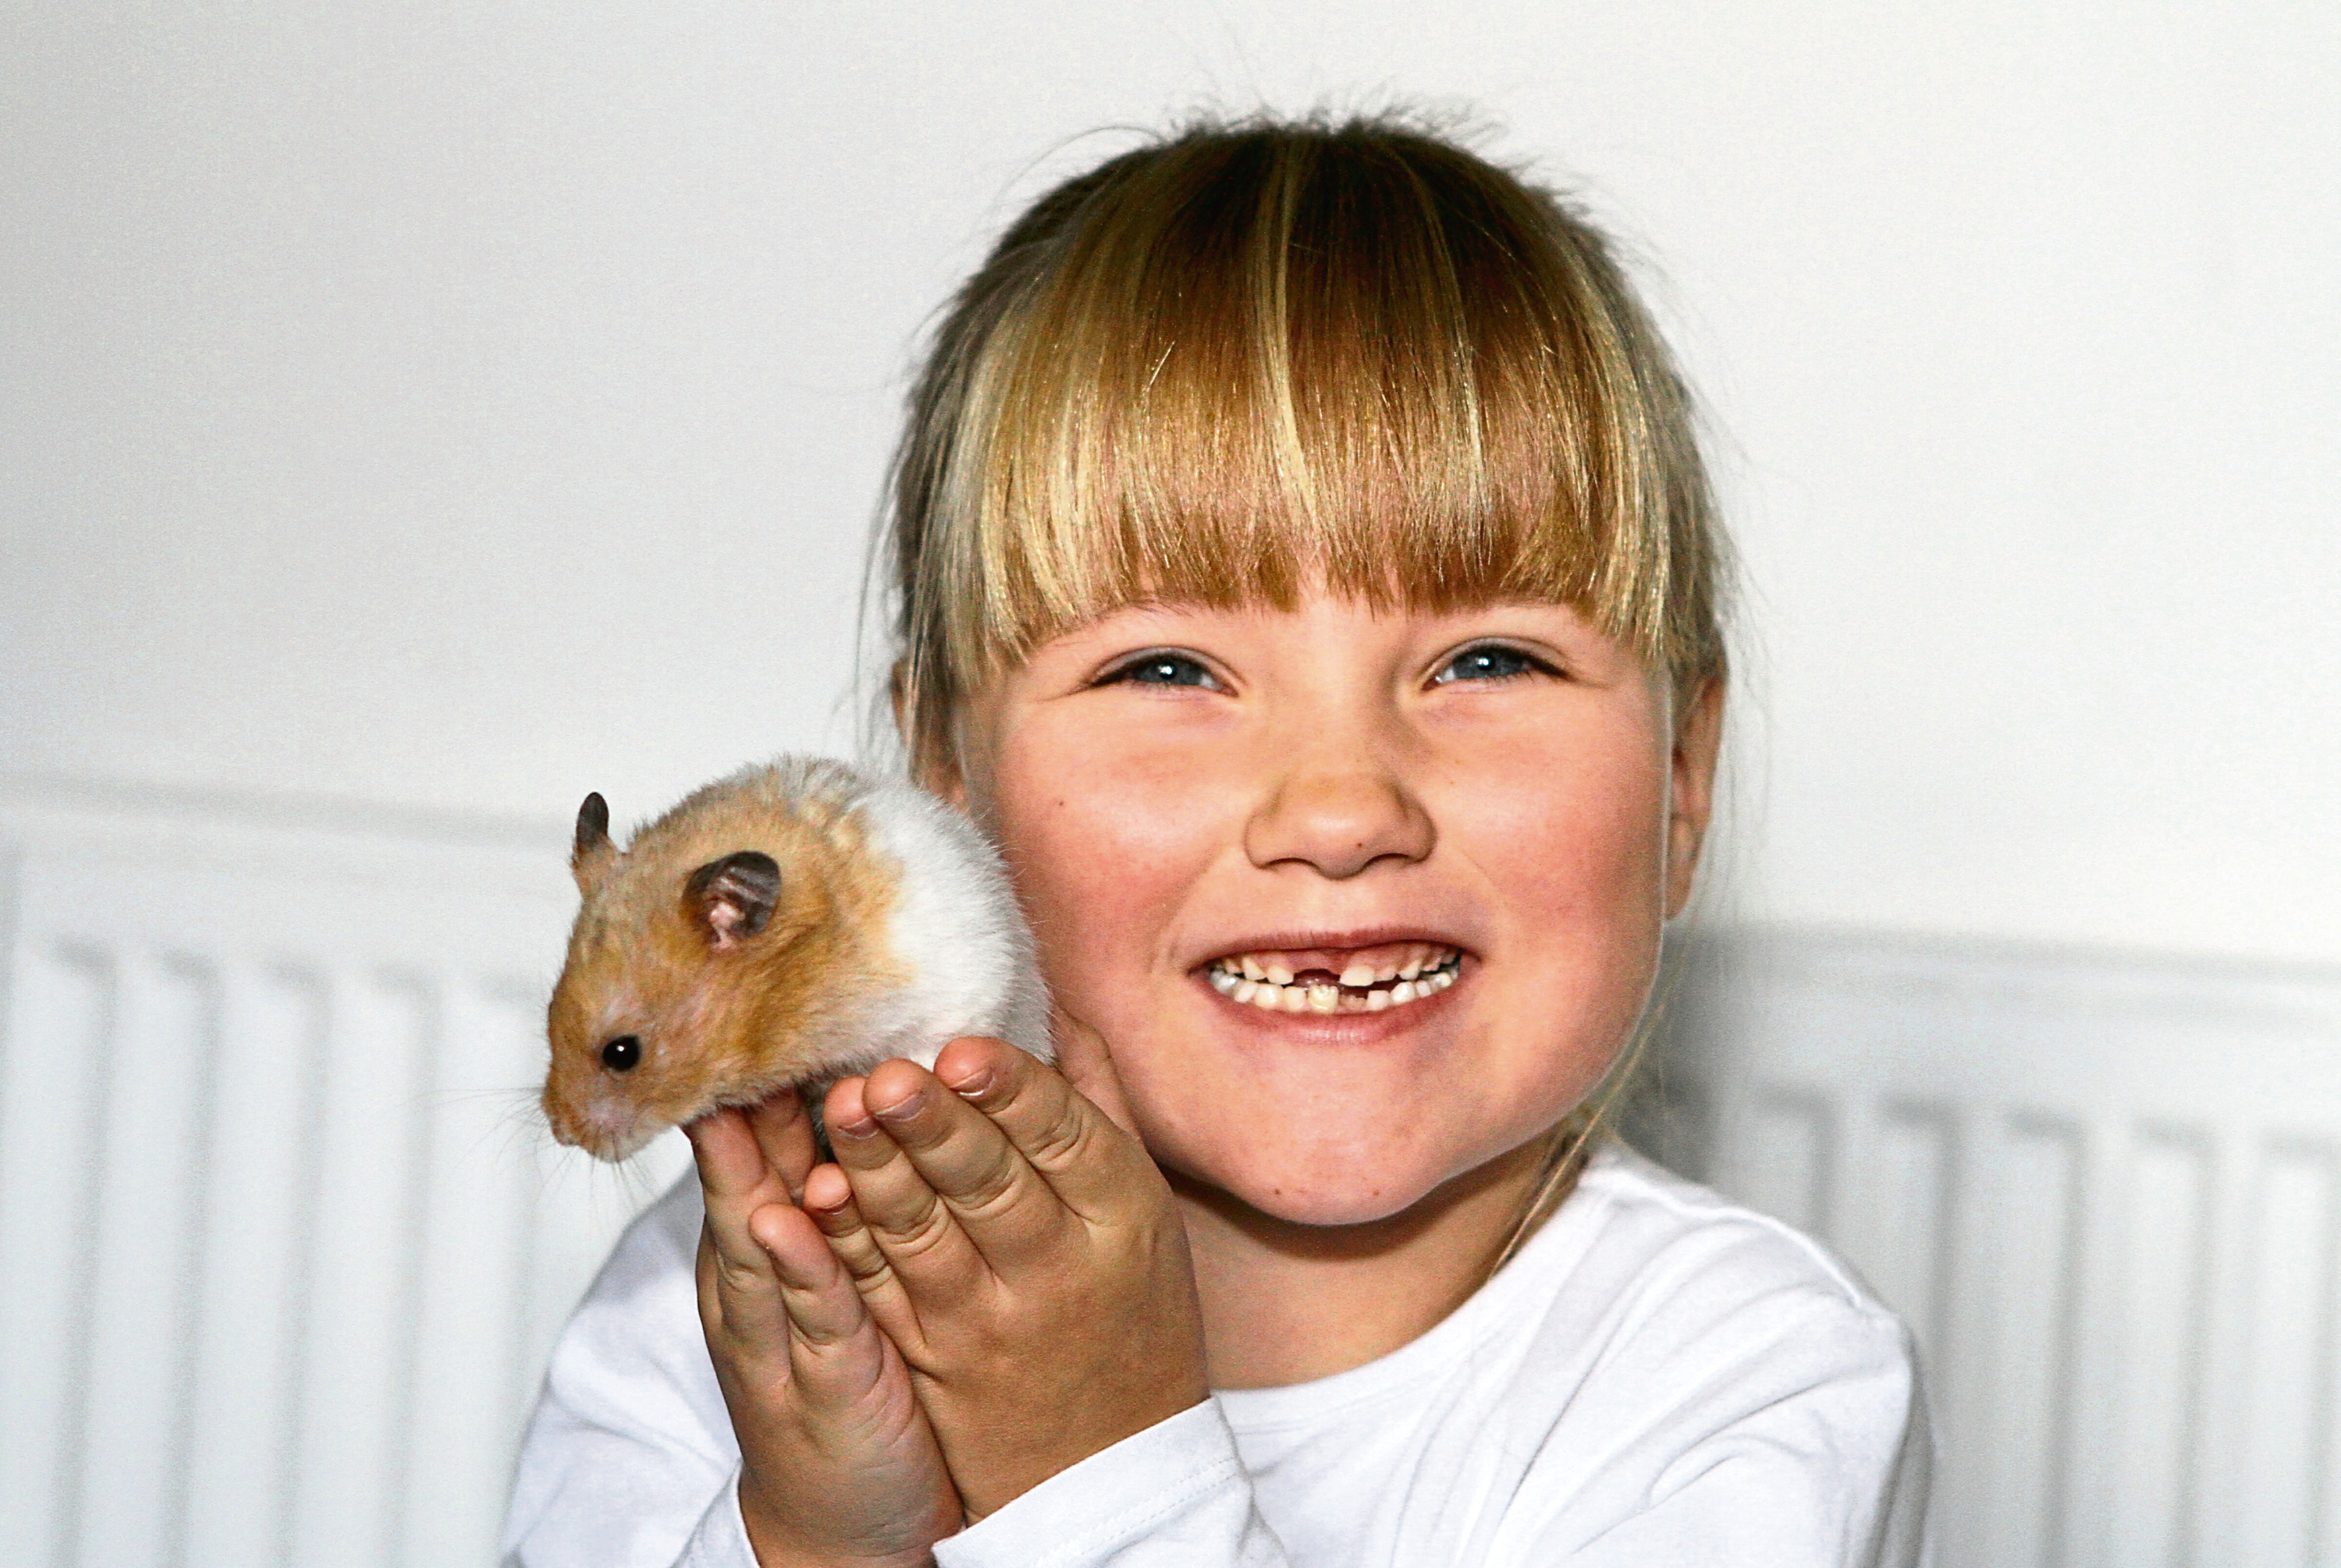 Becca Meldrum is delighted to be reunited with her pet whose two-year vanishing act remains a mystery.